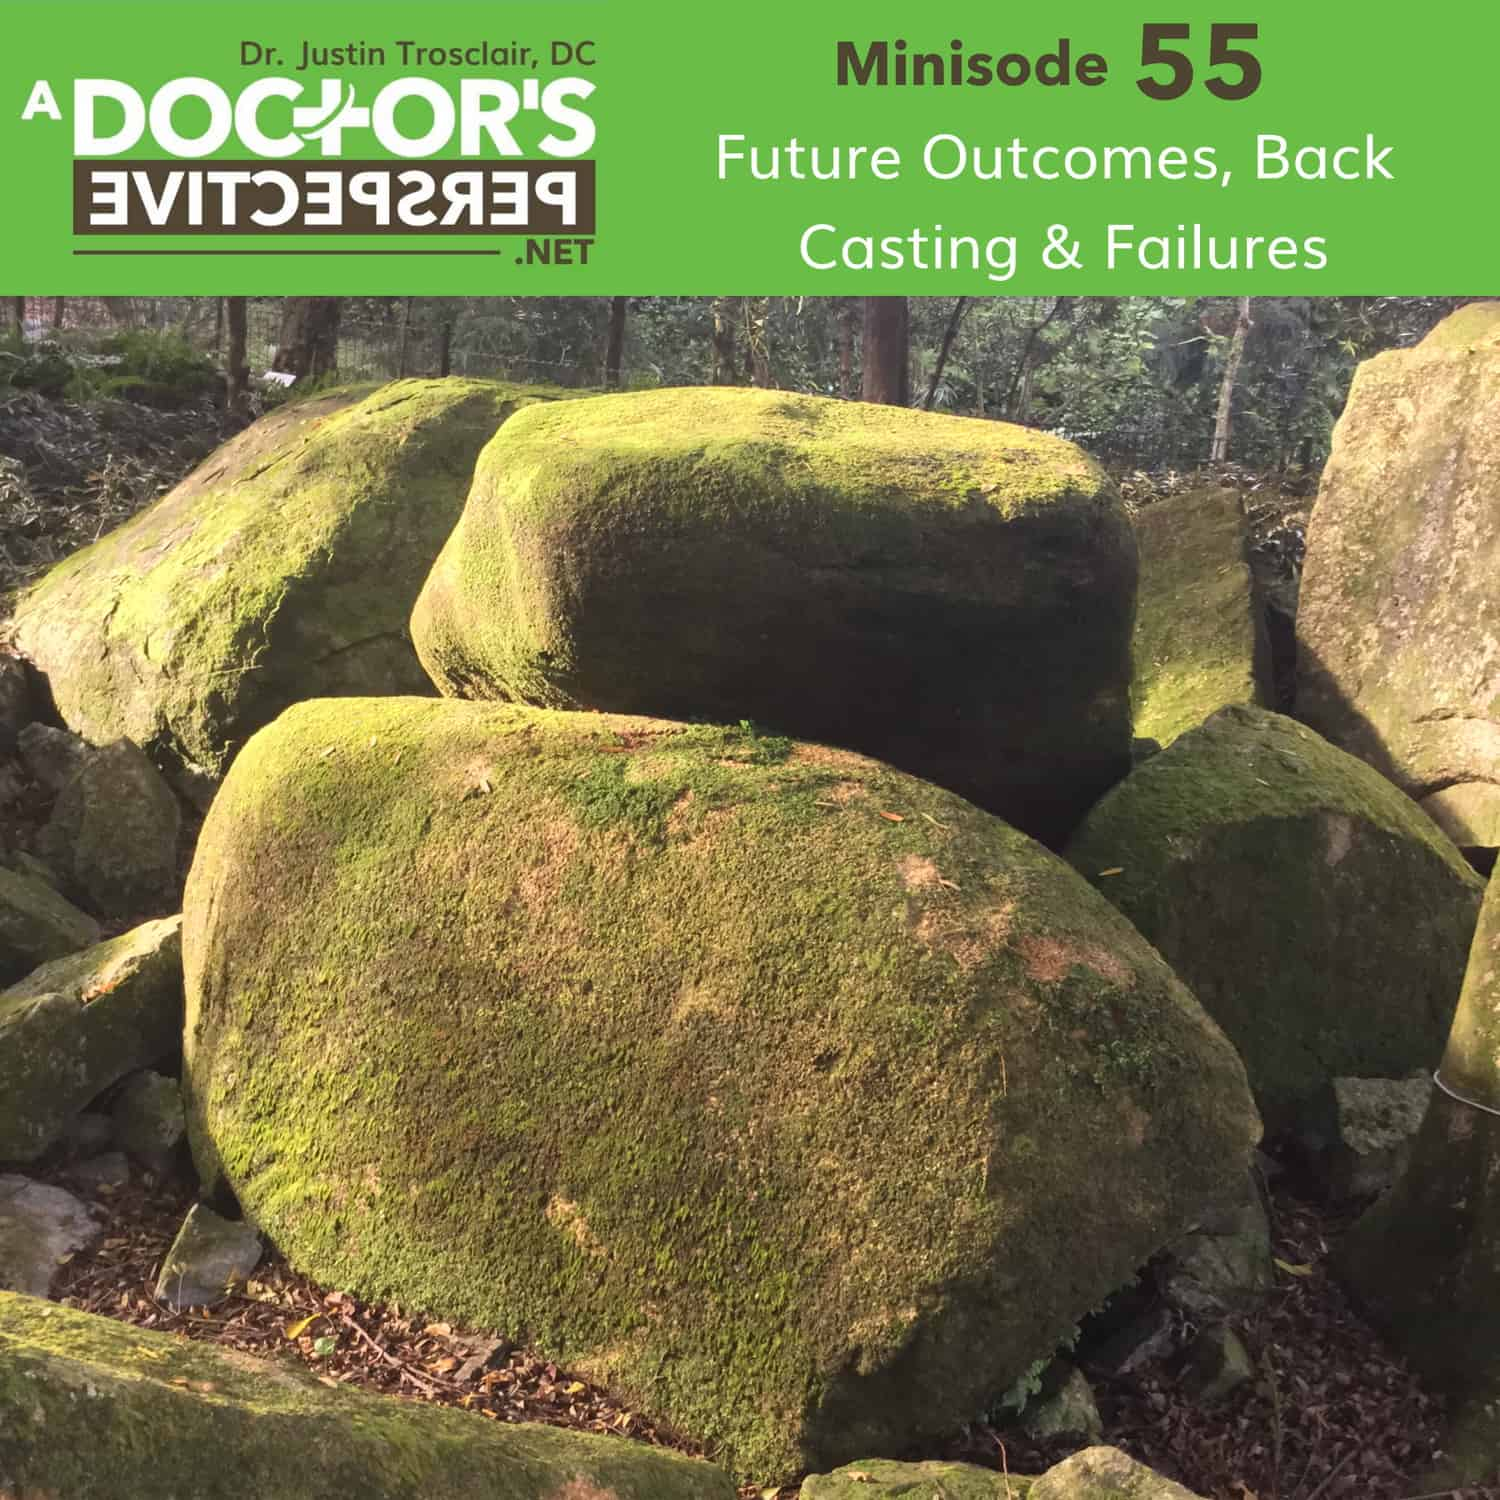 a doctors perspective minisode M 55 justin trosclair Future Outcomes Back Casting Failures